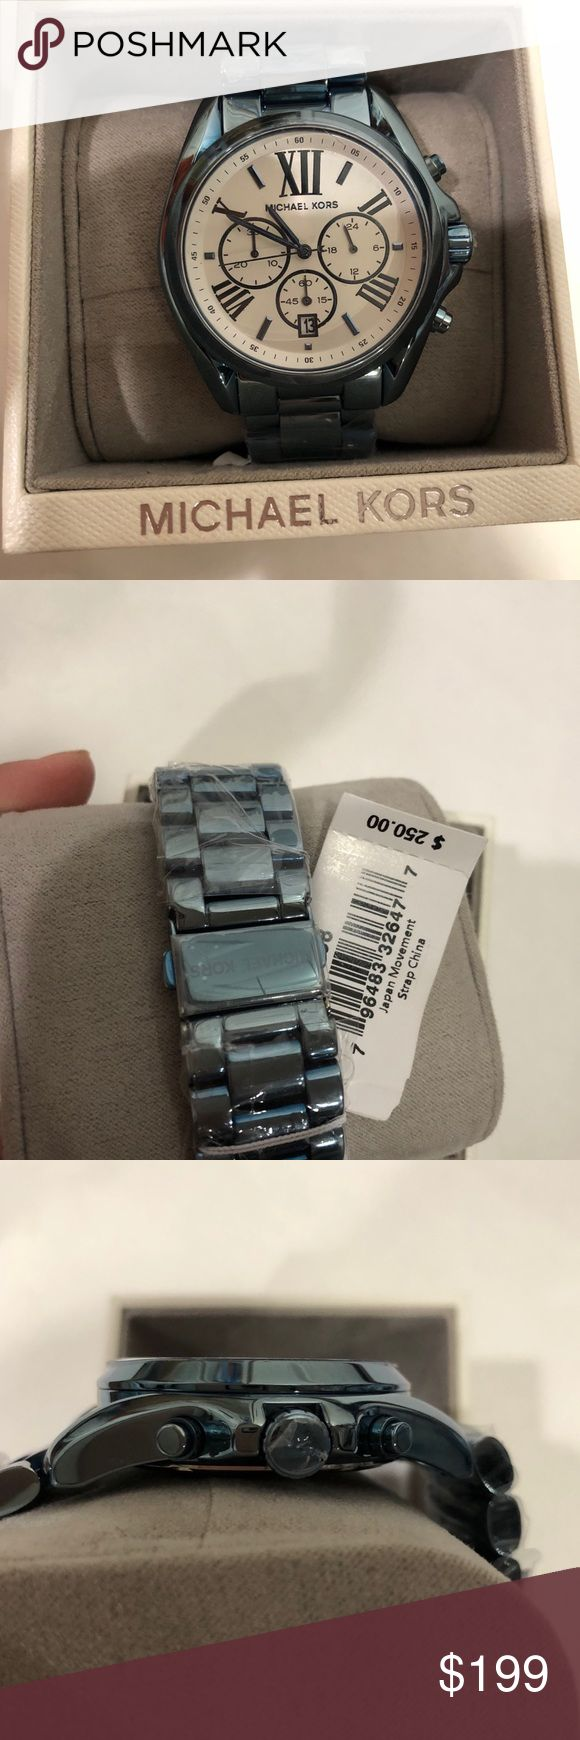 Michael kors blue watch Brand new with box and tags. Beautiful watch. Still has film on the band. 100% authentic. Michael Kors Accessories Watches